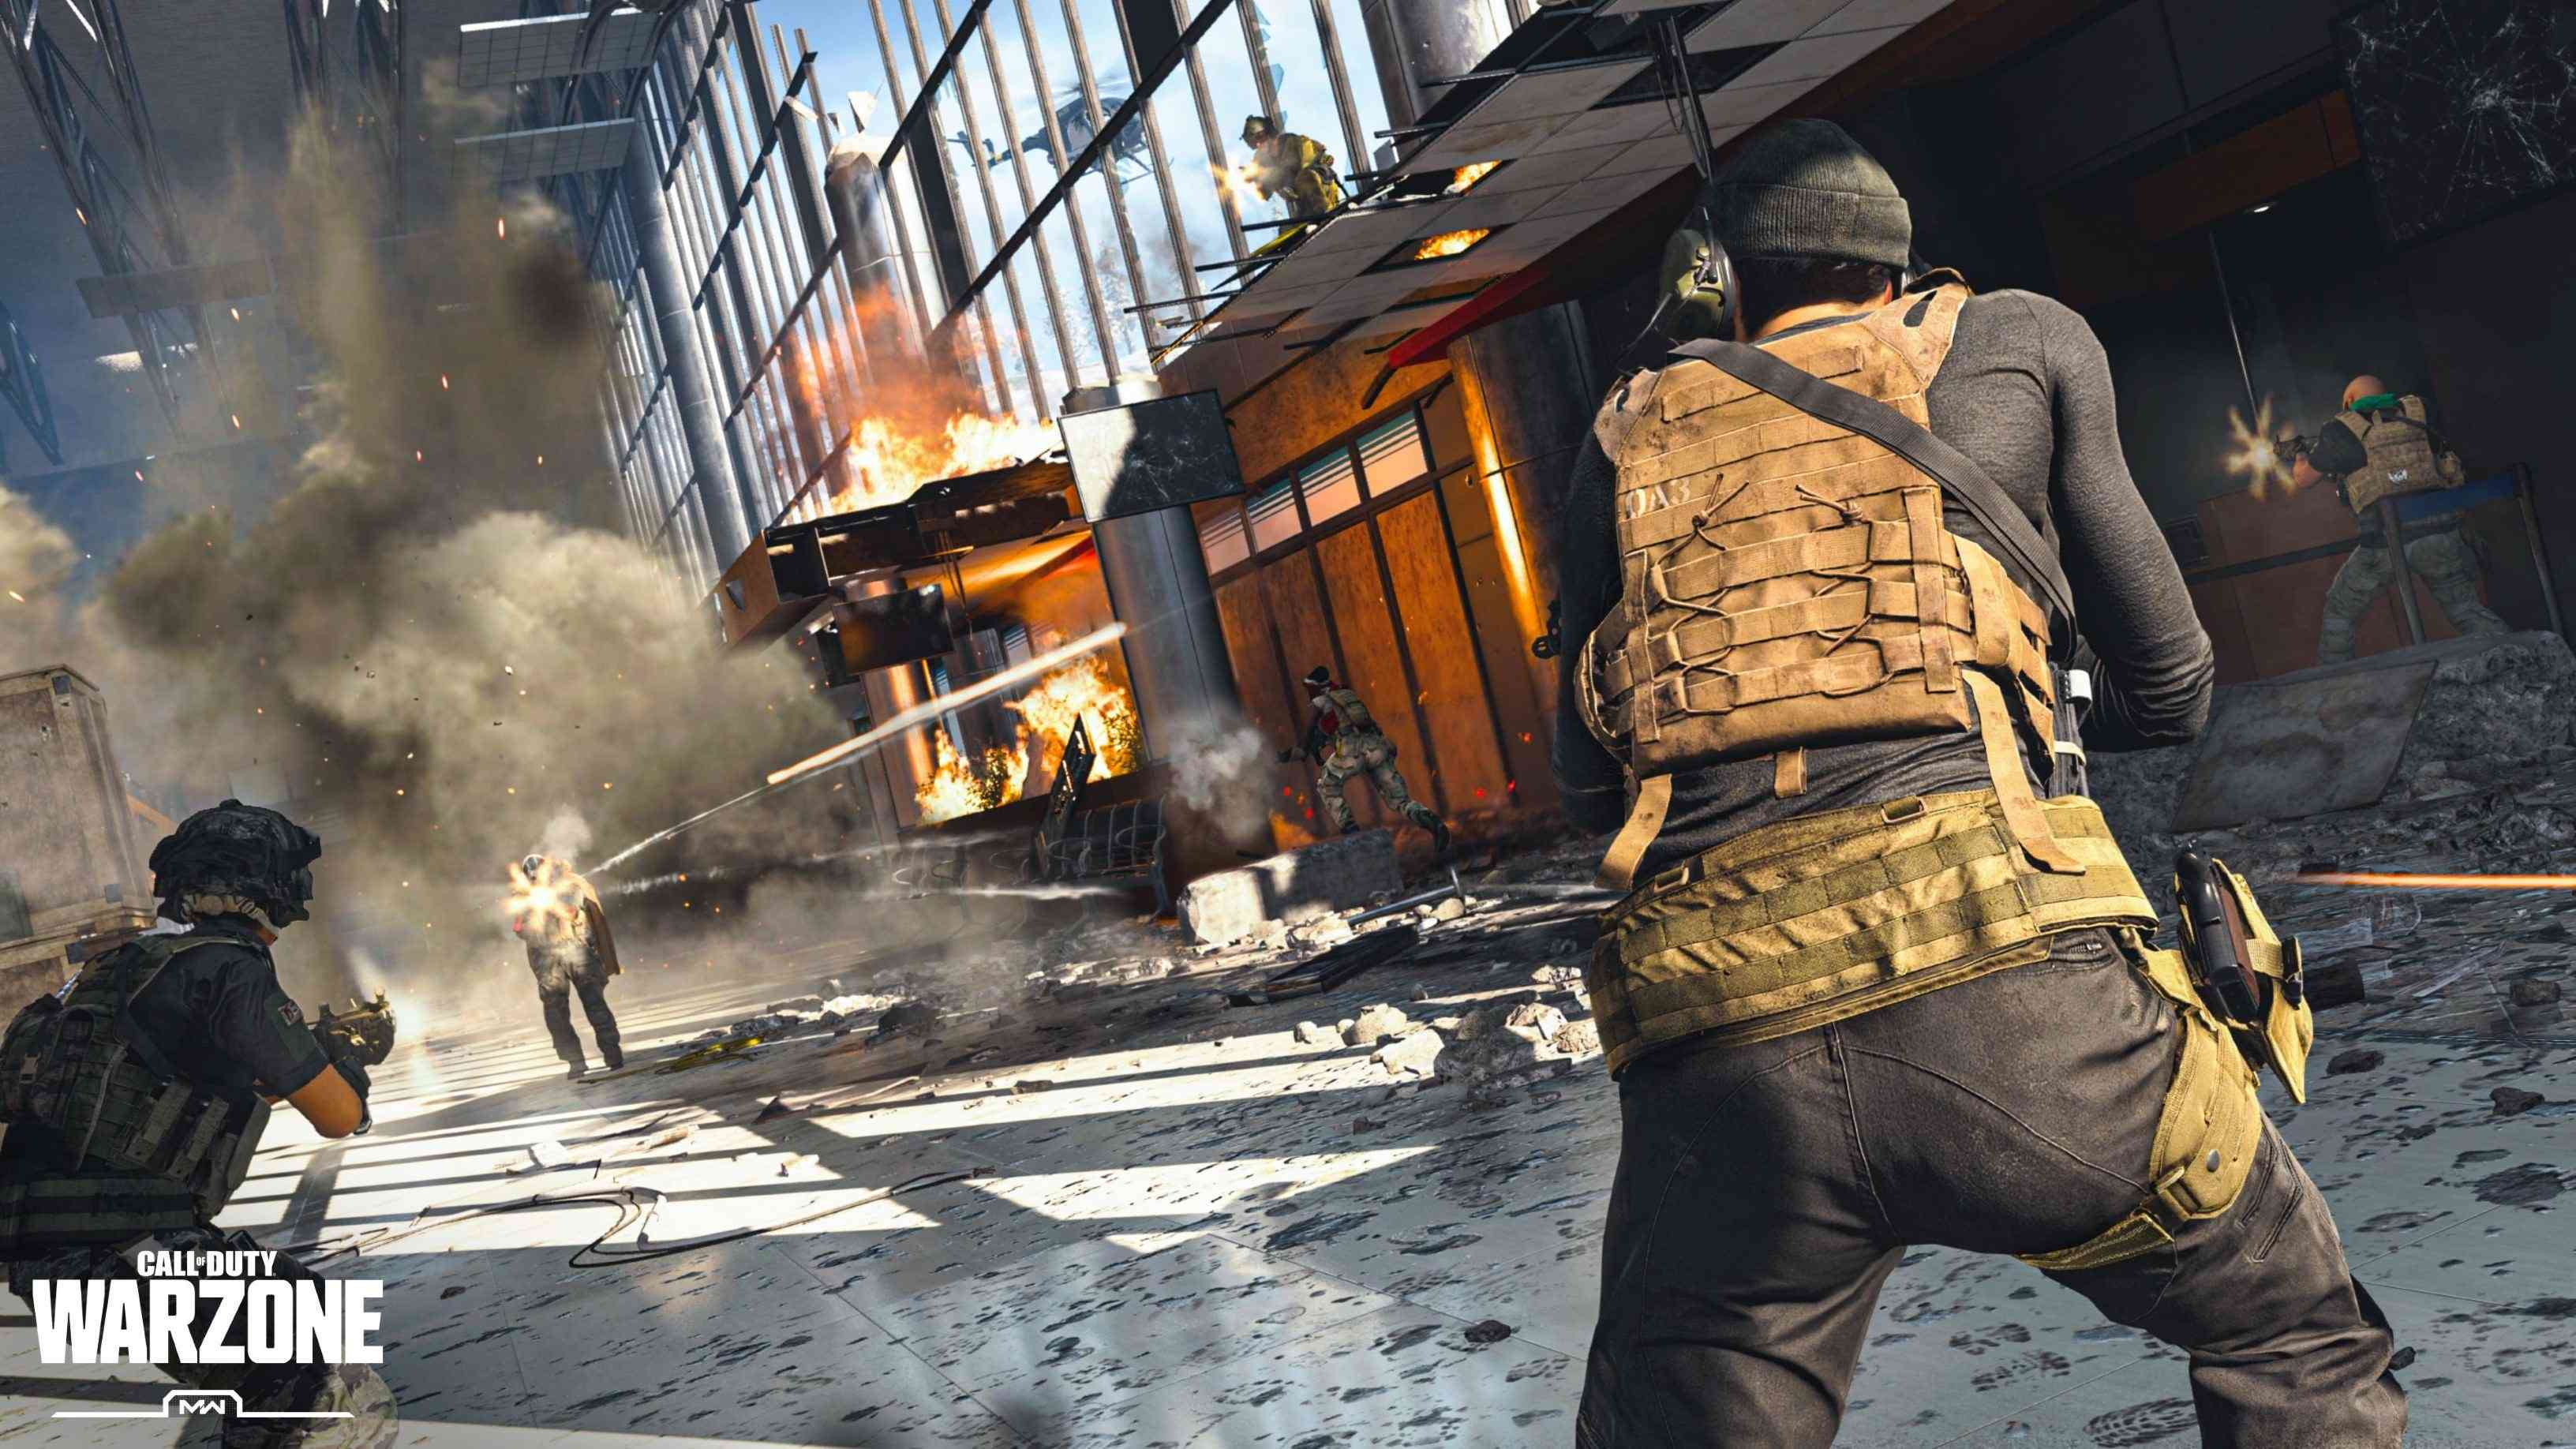 Call of Duty Warzone – Bild 3